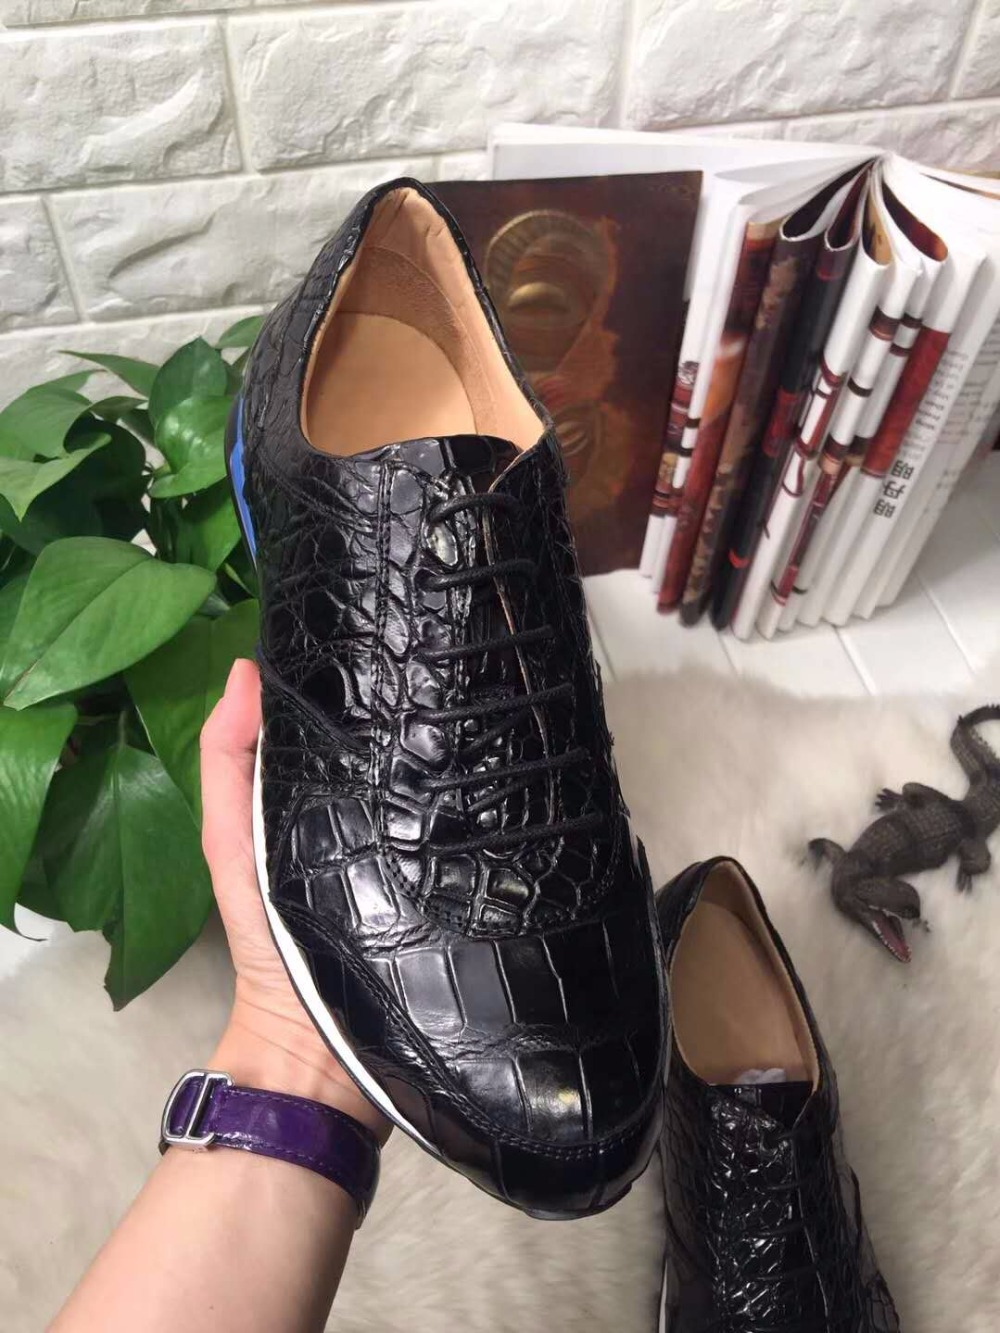 2018 Genuine real genuine crocodile belly skin men shoe, top quality crocodile skin leisure fashion men shoe black color crocodile crocodile cr225r black gold page 8